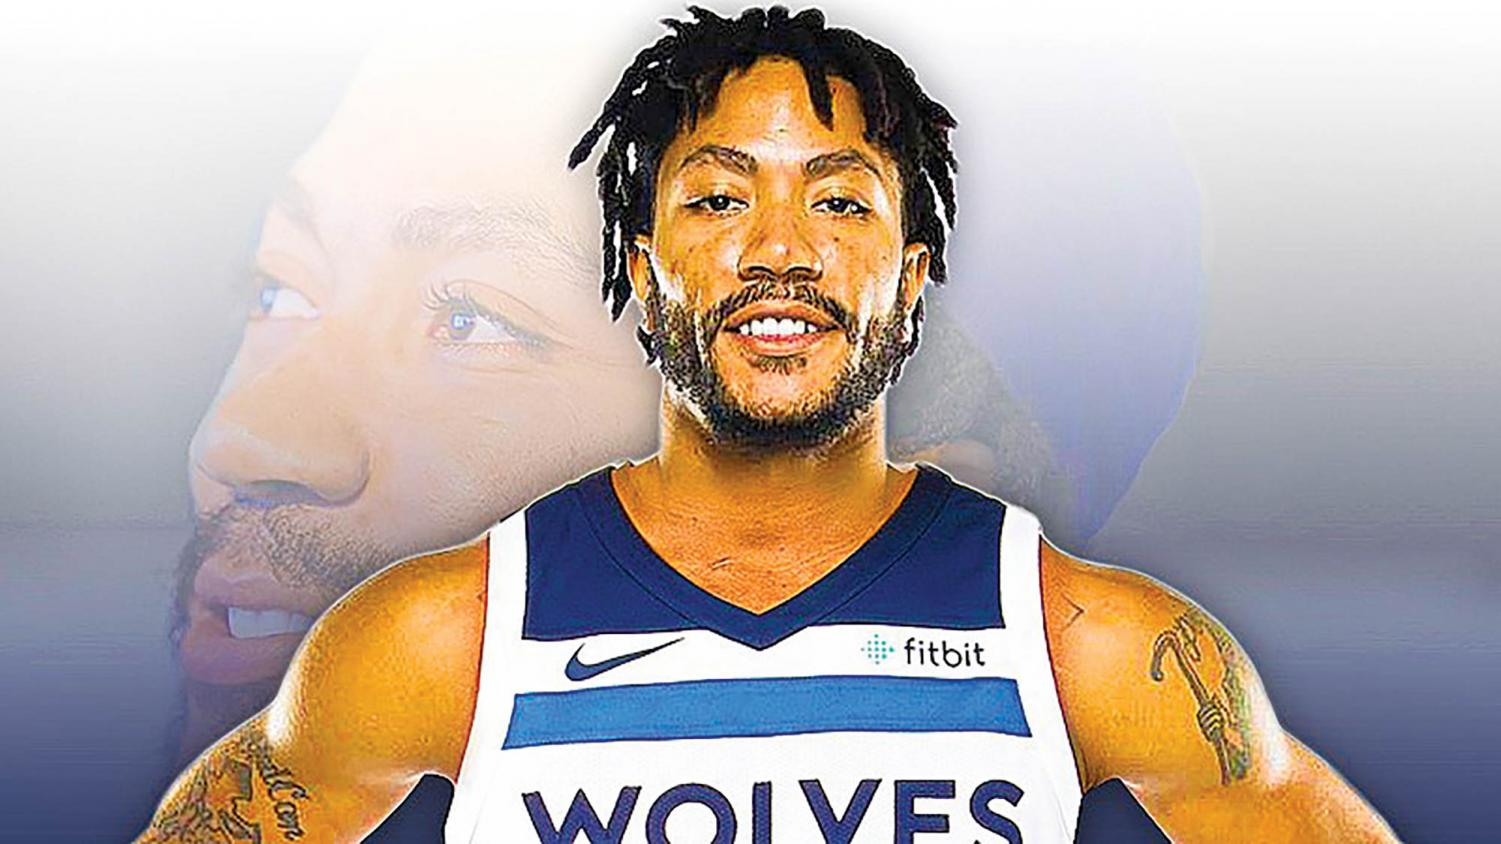 Derrick Rose recently beat his career-high with 50 points.